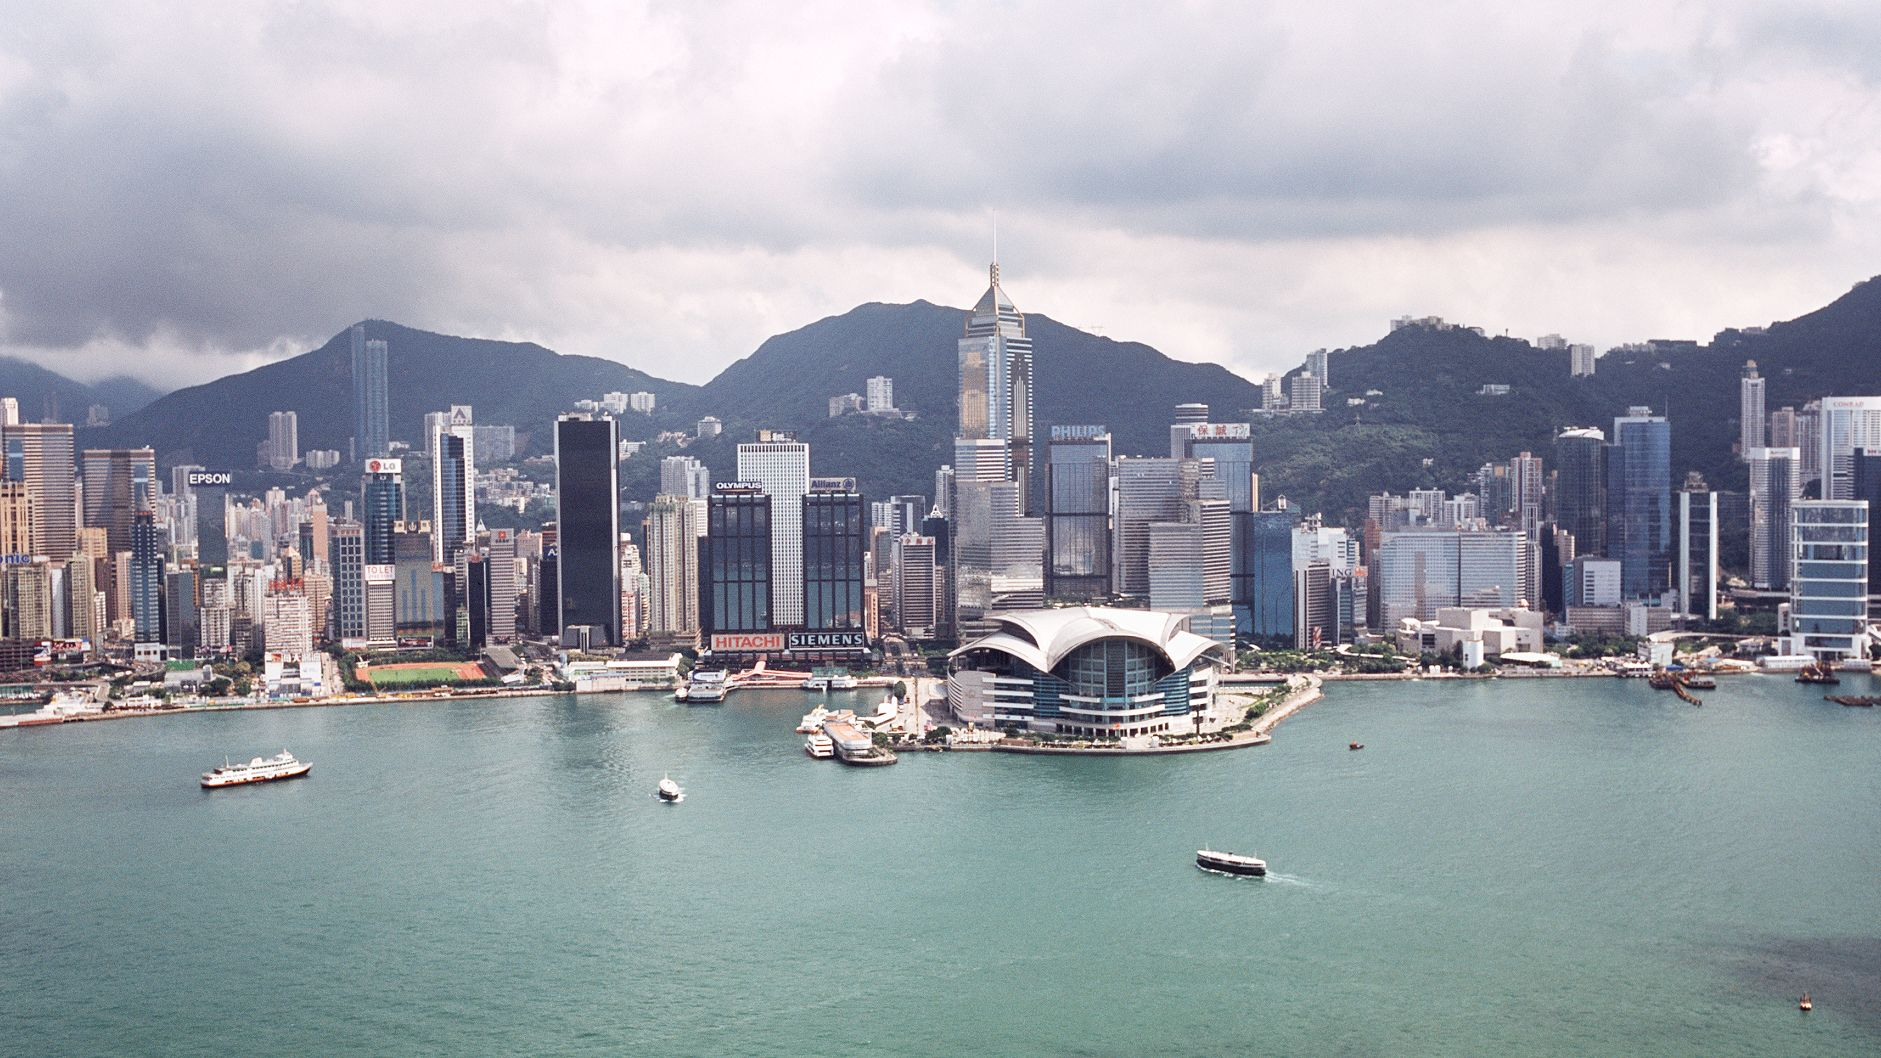 Aerial view of the Victoria Harbour in Hong Kong